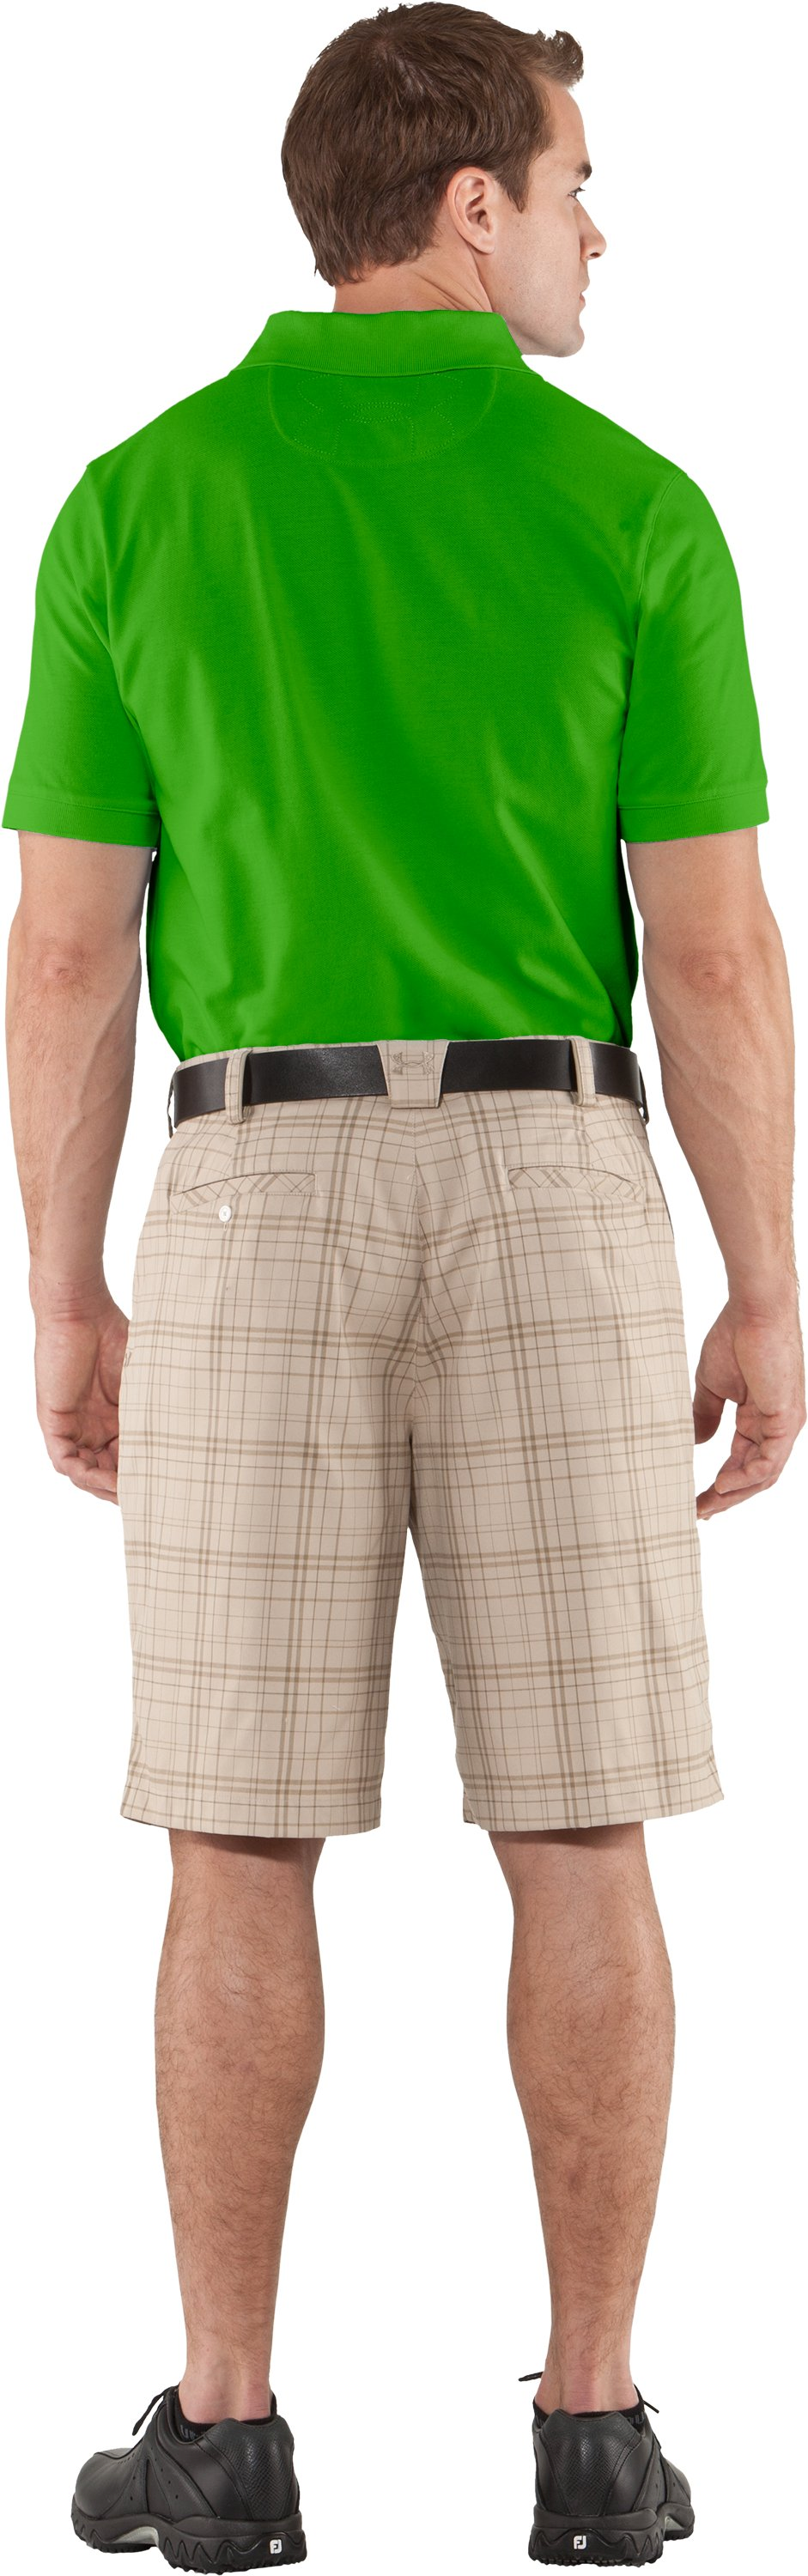 Men's Charged Cotton® Pique Polo, PARROT GREEN, Back